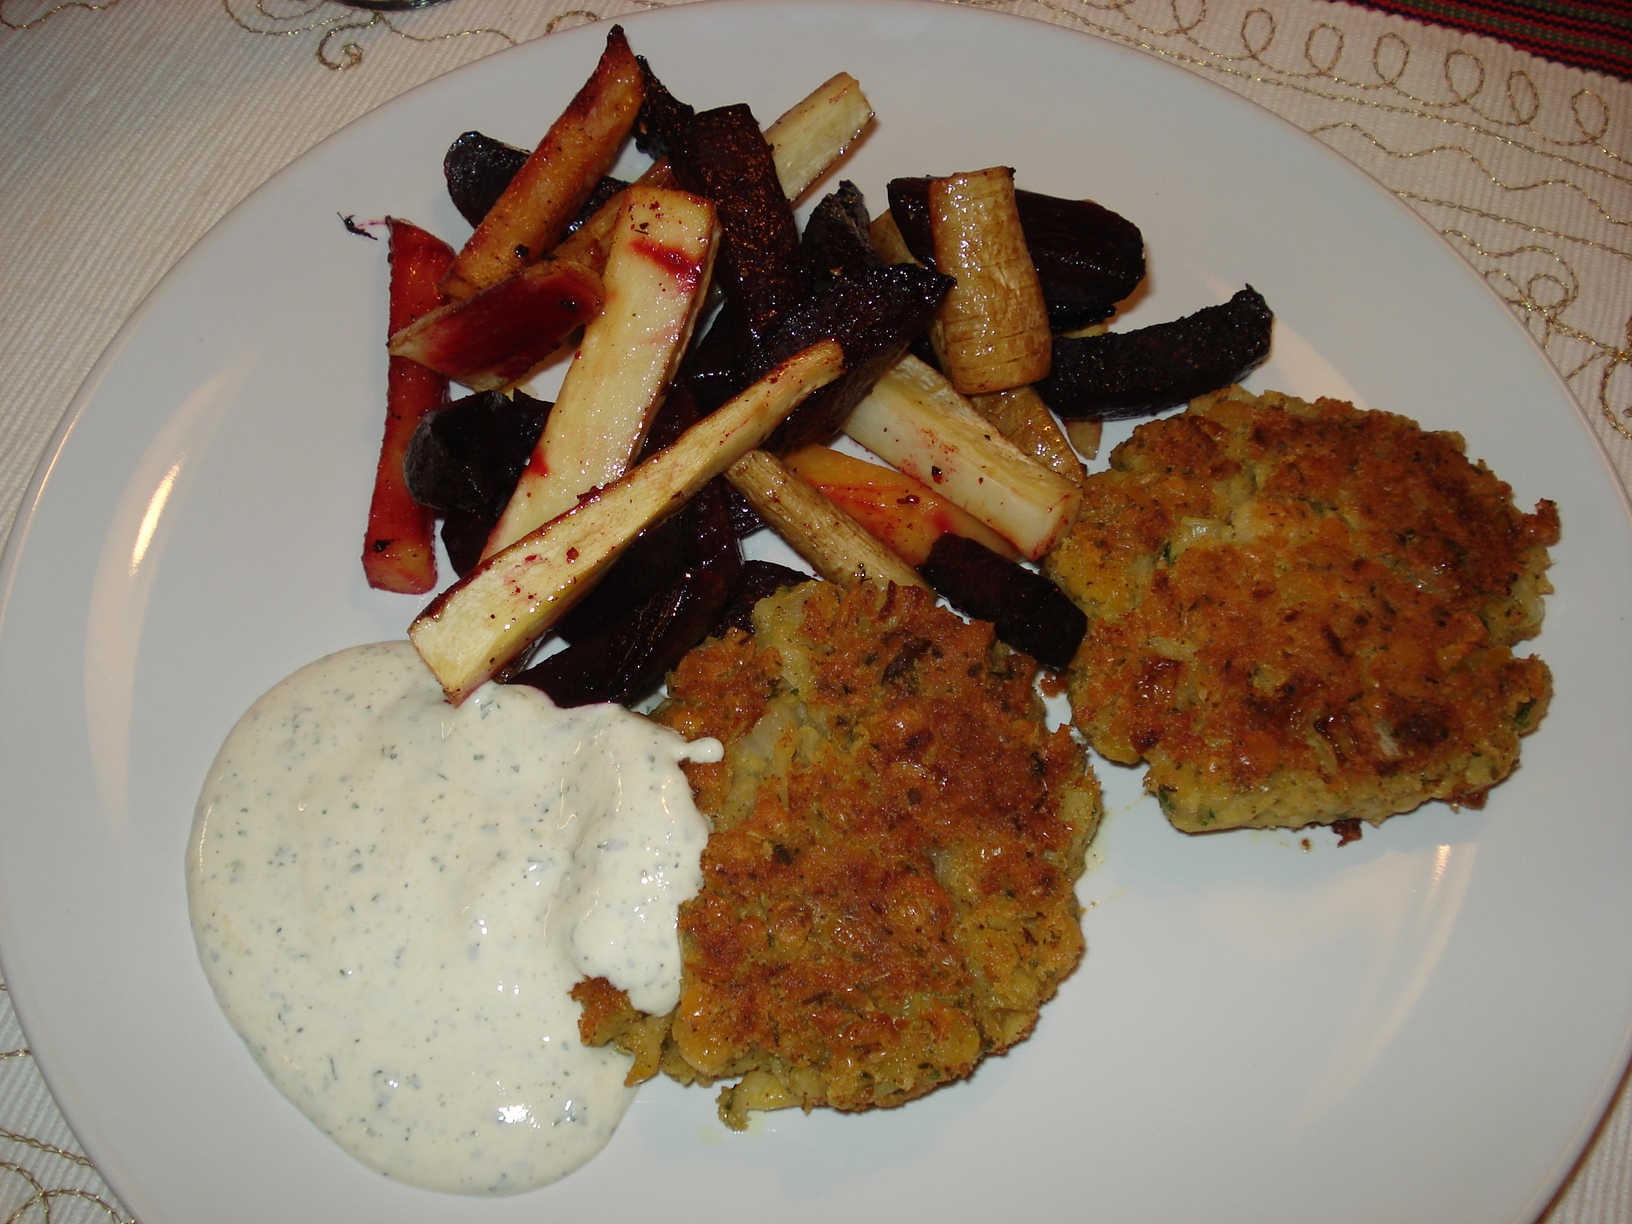 Yellow pea patties with roasted root vegetables and mustard-flavored sour cream